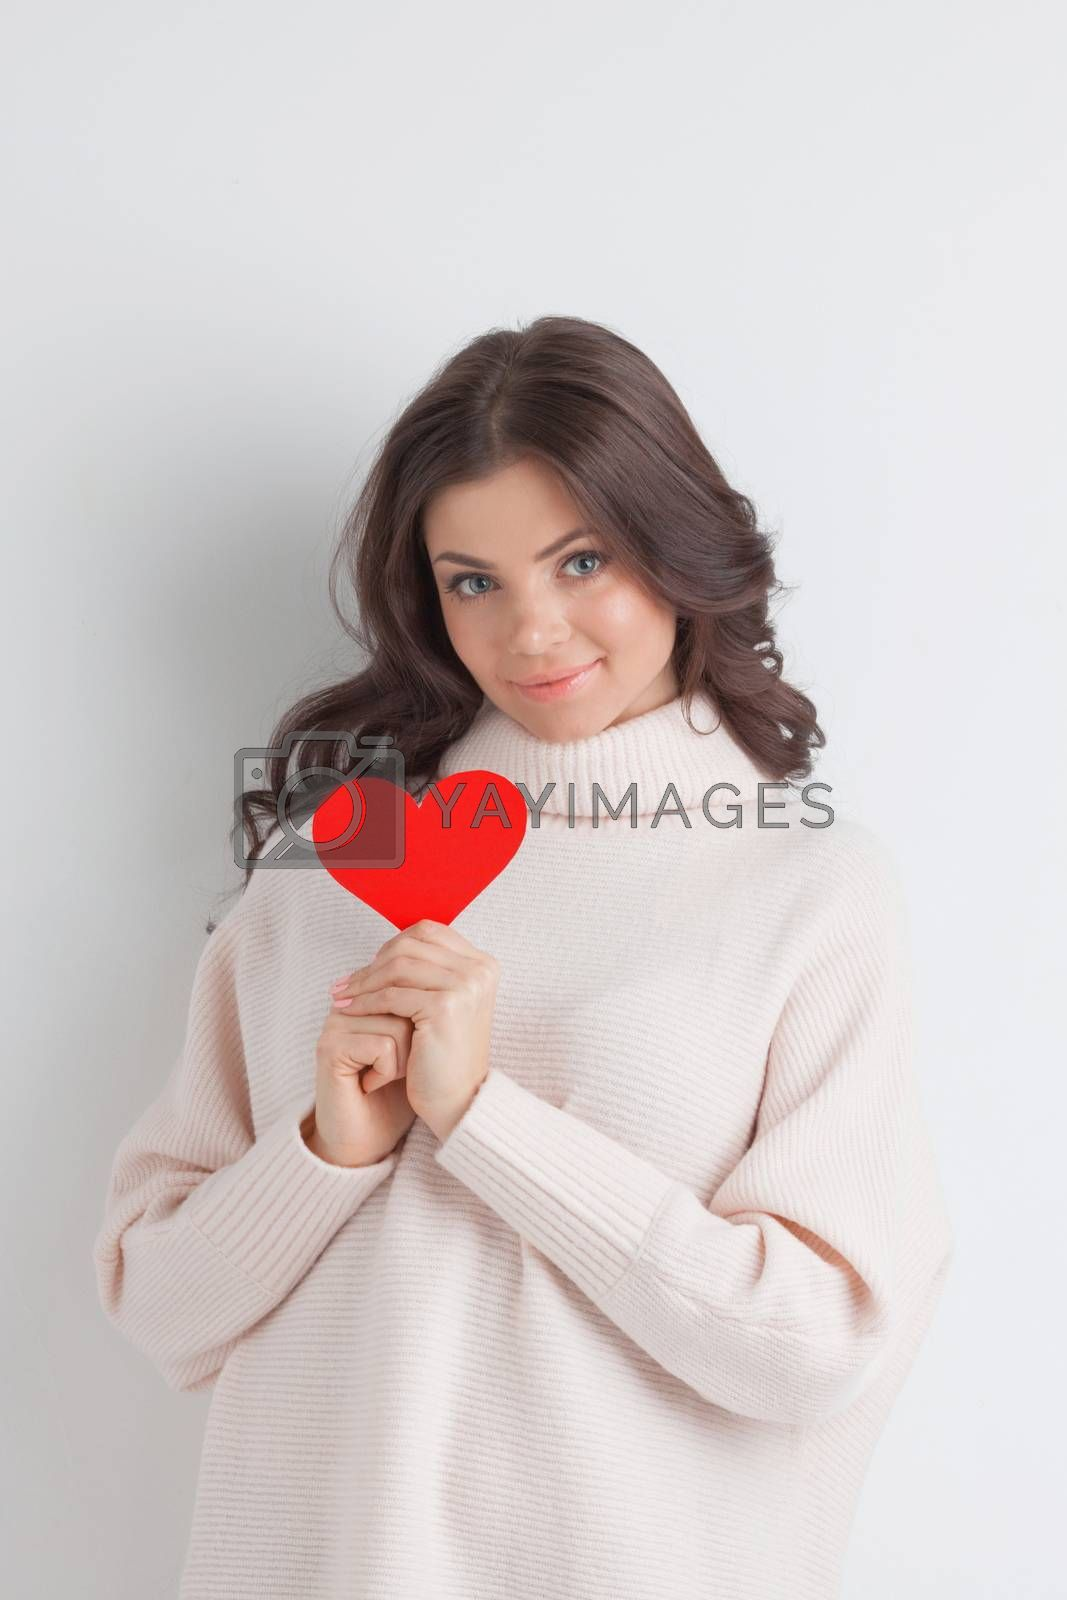 Woman holding paper heart shaped card . Valentine day concept . I'm looking waiting for partner ! Advertising people person relationship couple concept , white background